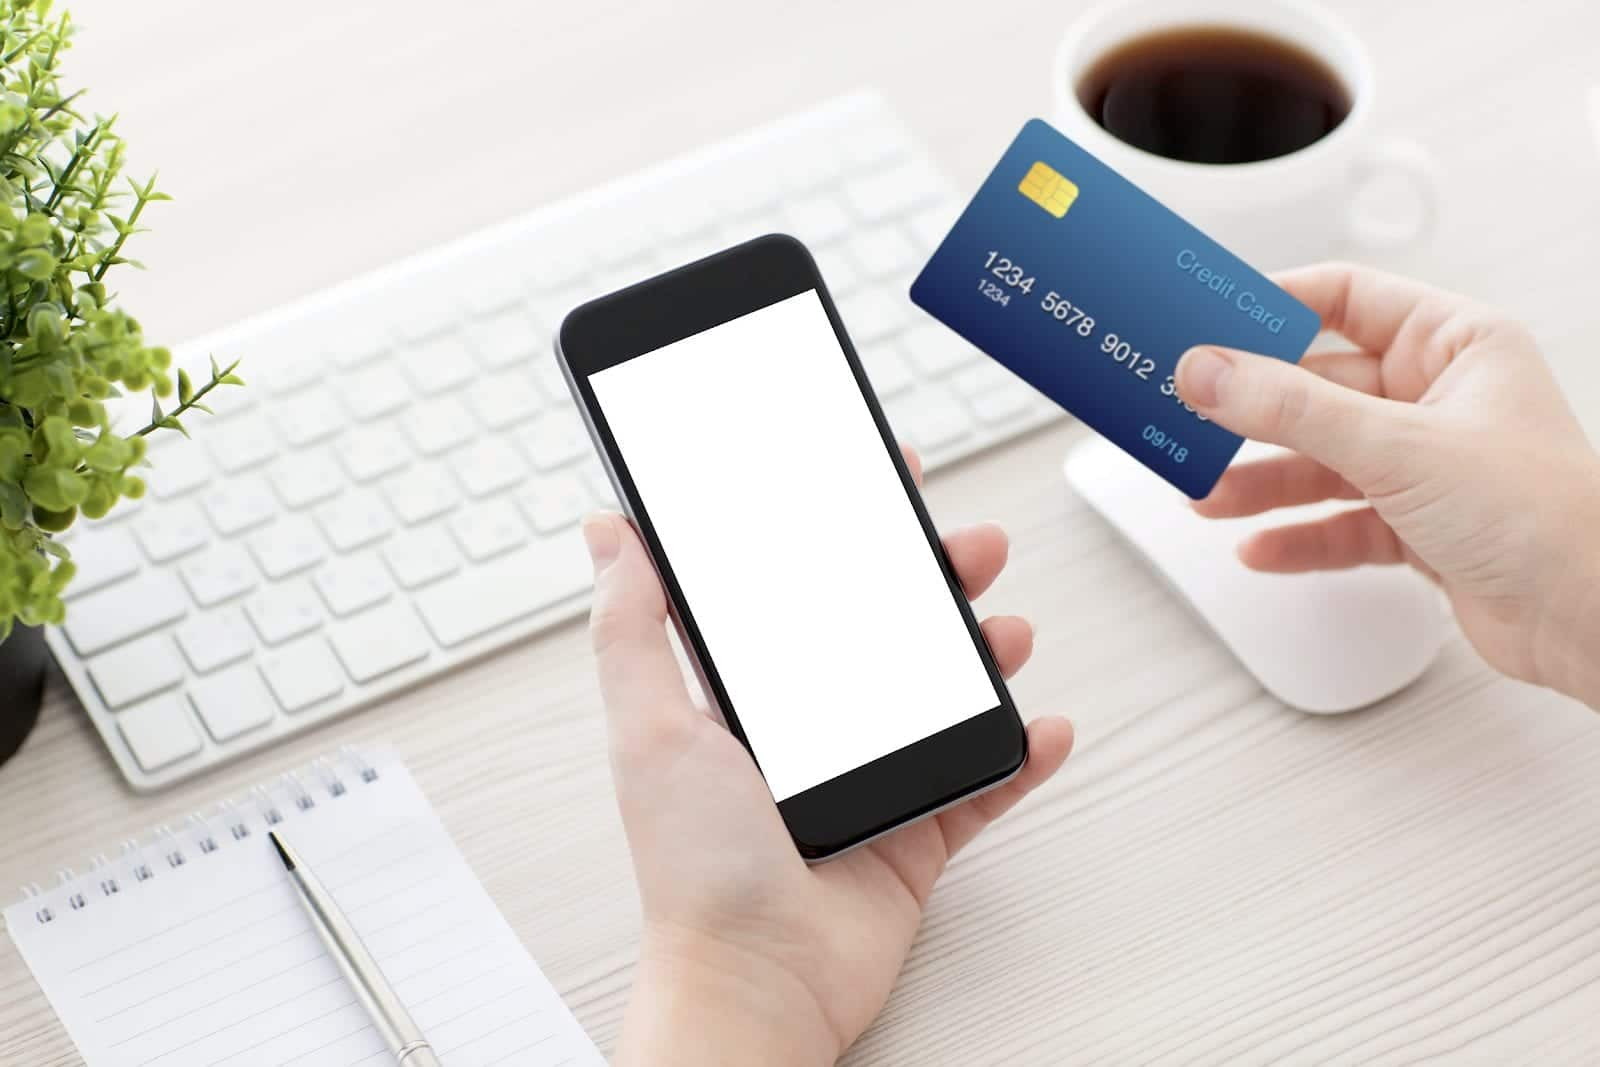 Learn the secret link between phone verification and credit card fraud